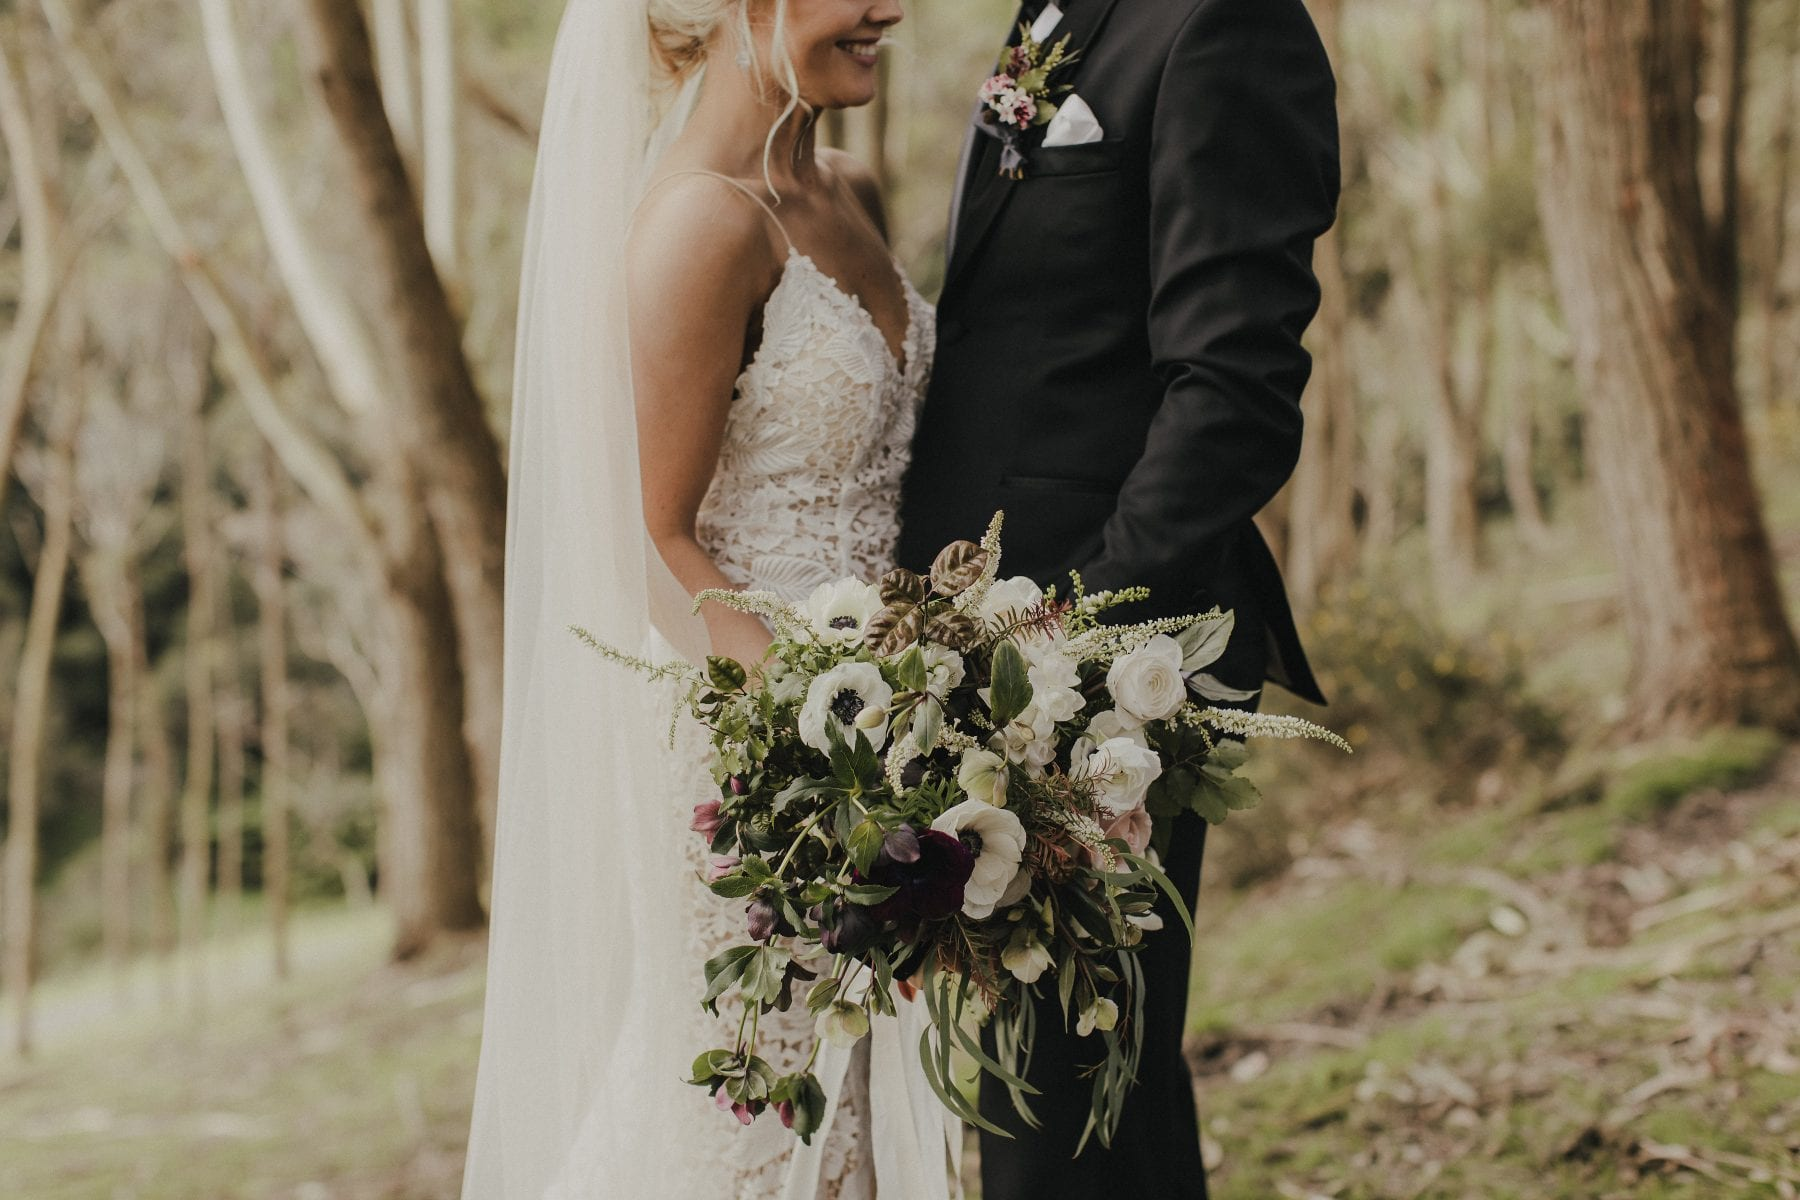 On My Hand Wedding flowers for real wedding - Gert and Trent in Kauri Bay Boomrock - bride and groom with bouquet